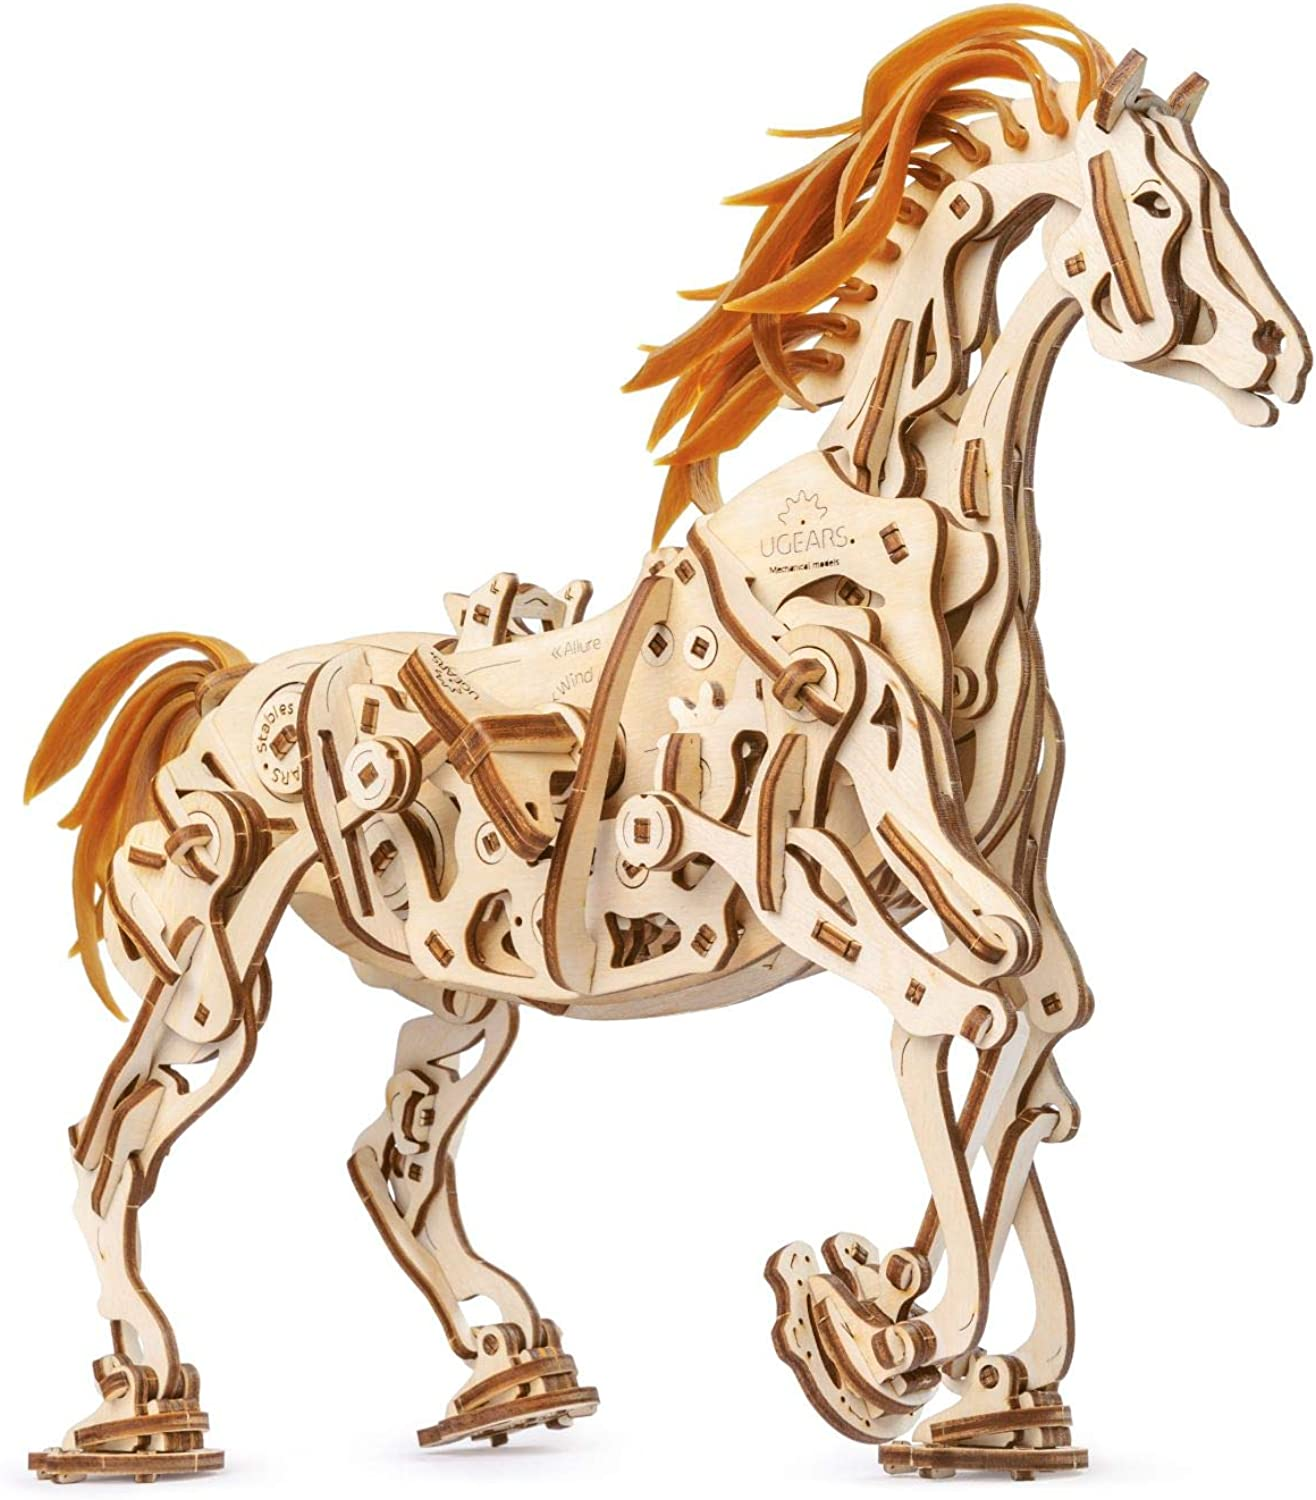 UGears 70054 Wooden Horse Puzzle, Model Building Set, Brain Game, DIY Puzzle, Educational Toy, Environmentally Friendly